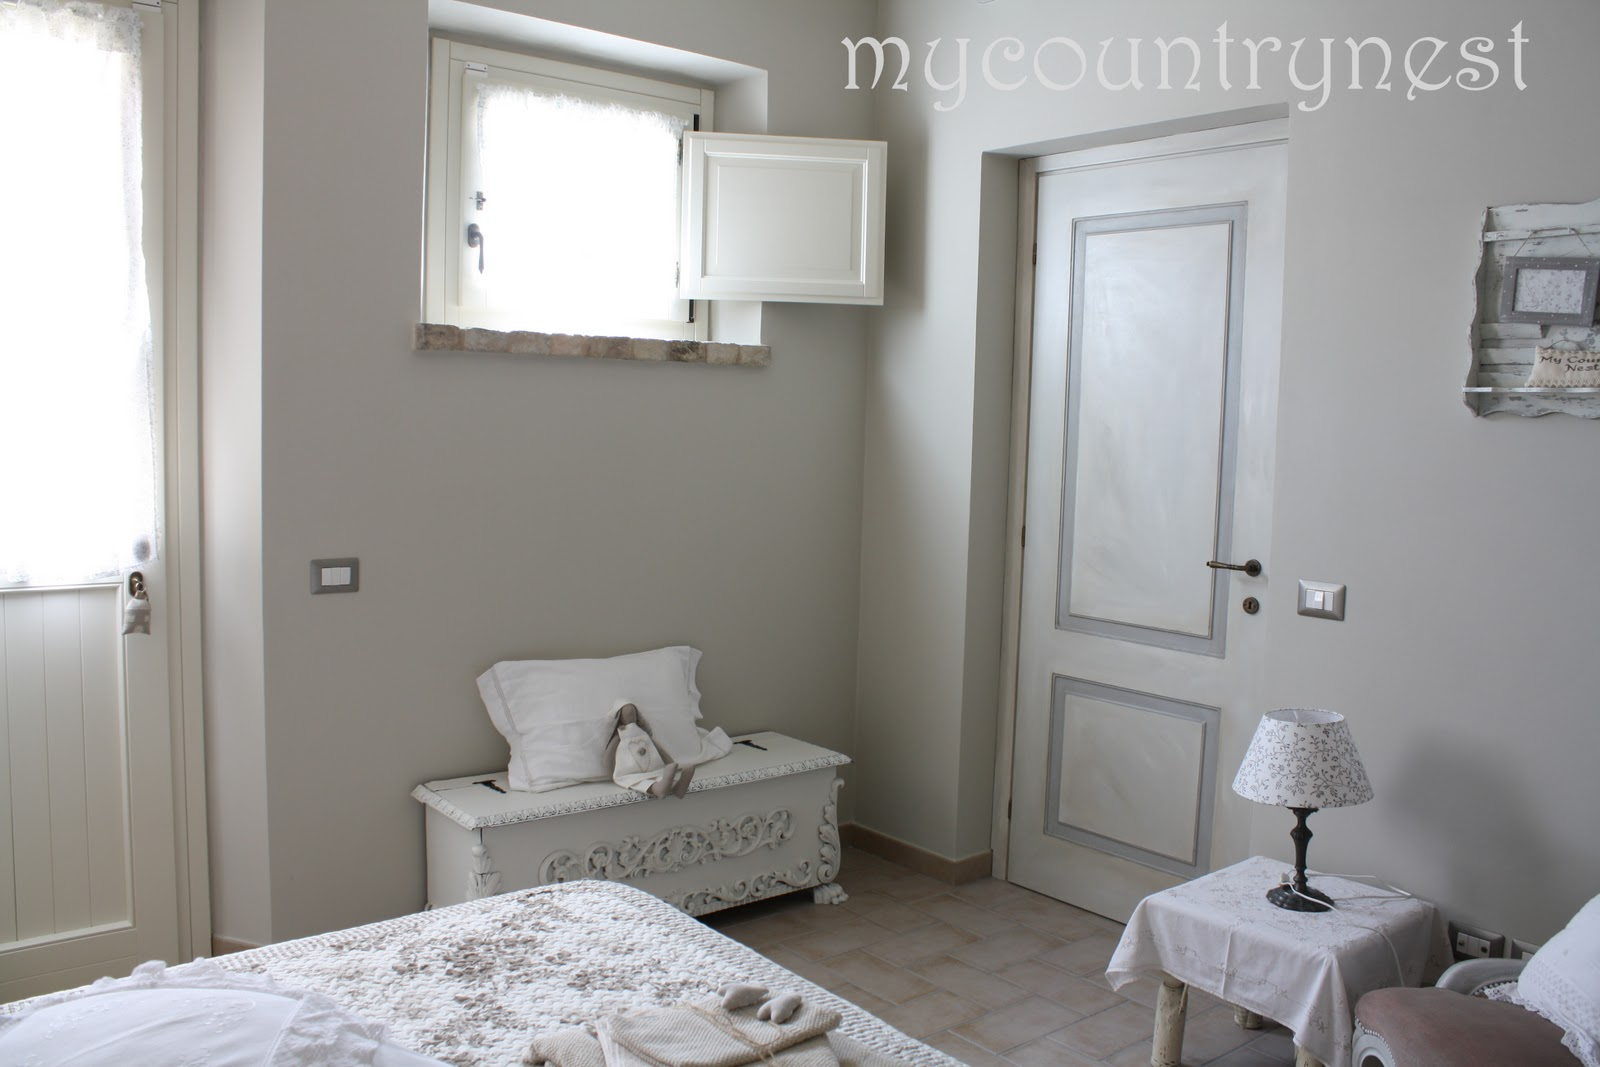 My Country Nest Aura Soave Shabby Chic Room